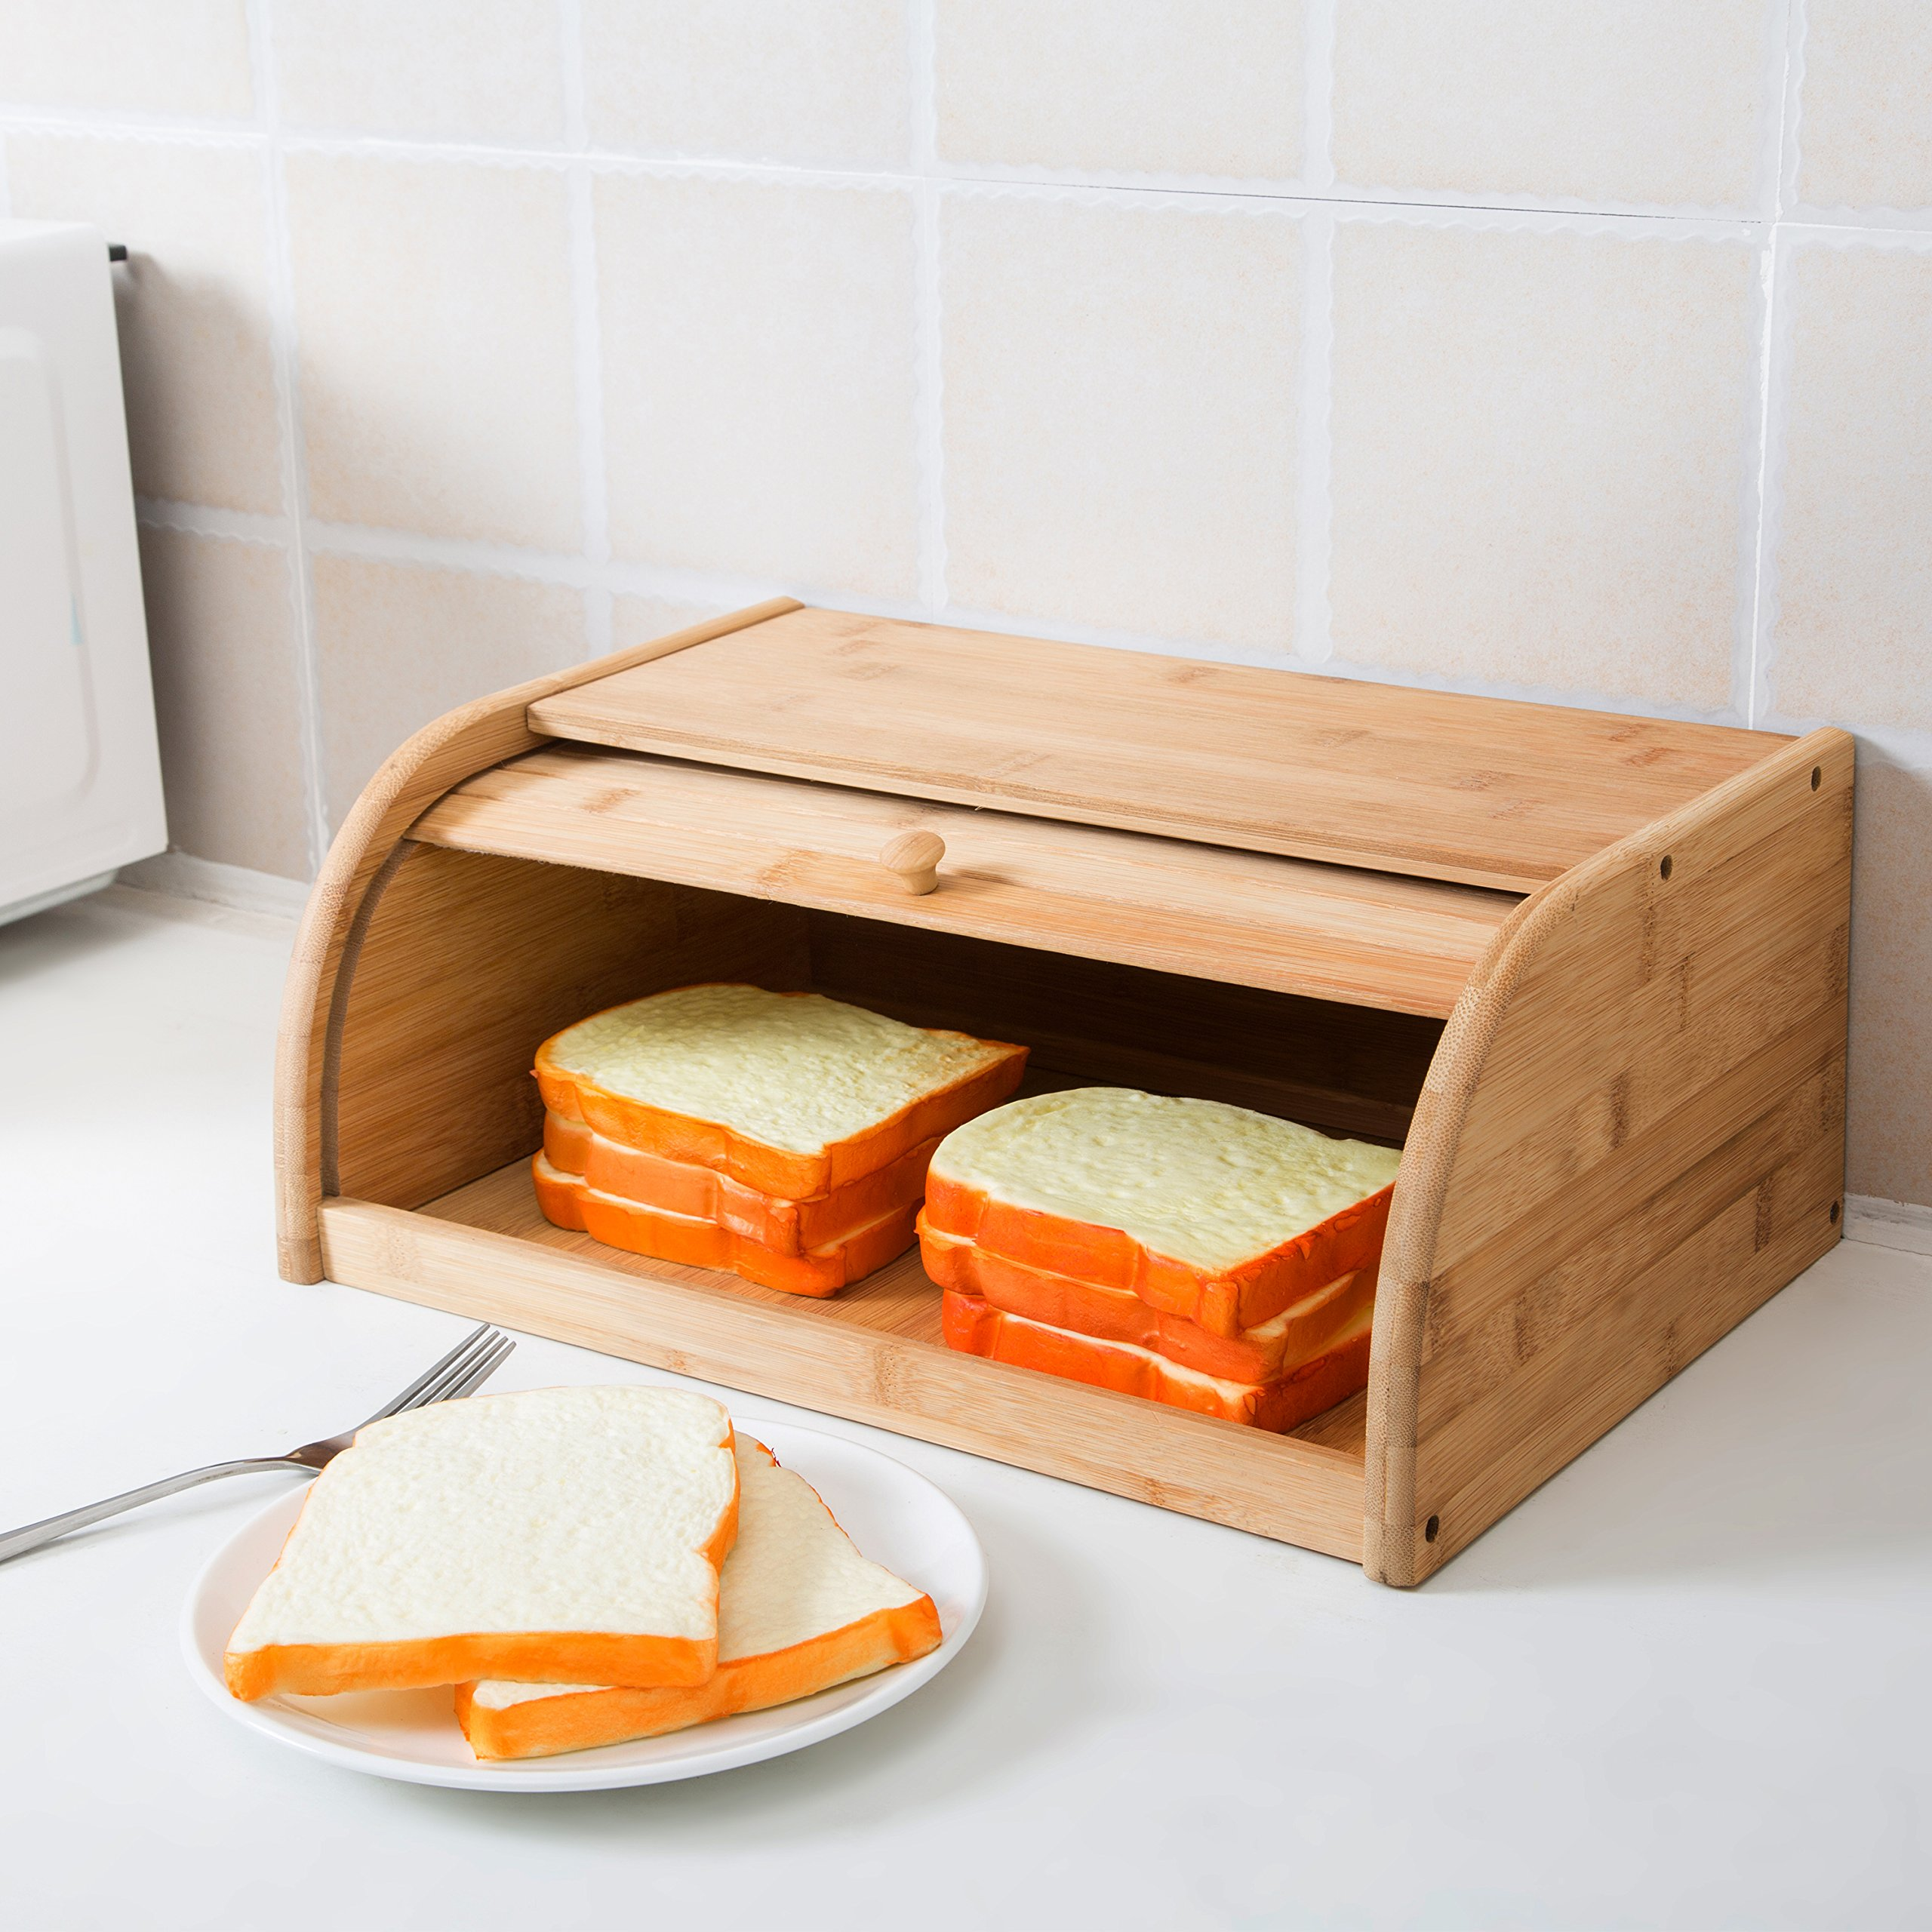 16 inch Kitchen Natural Wooden Bamboo Rolltop Bread Box Food Storage - MyGift by MyGift (Image #2)